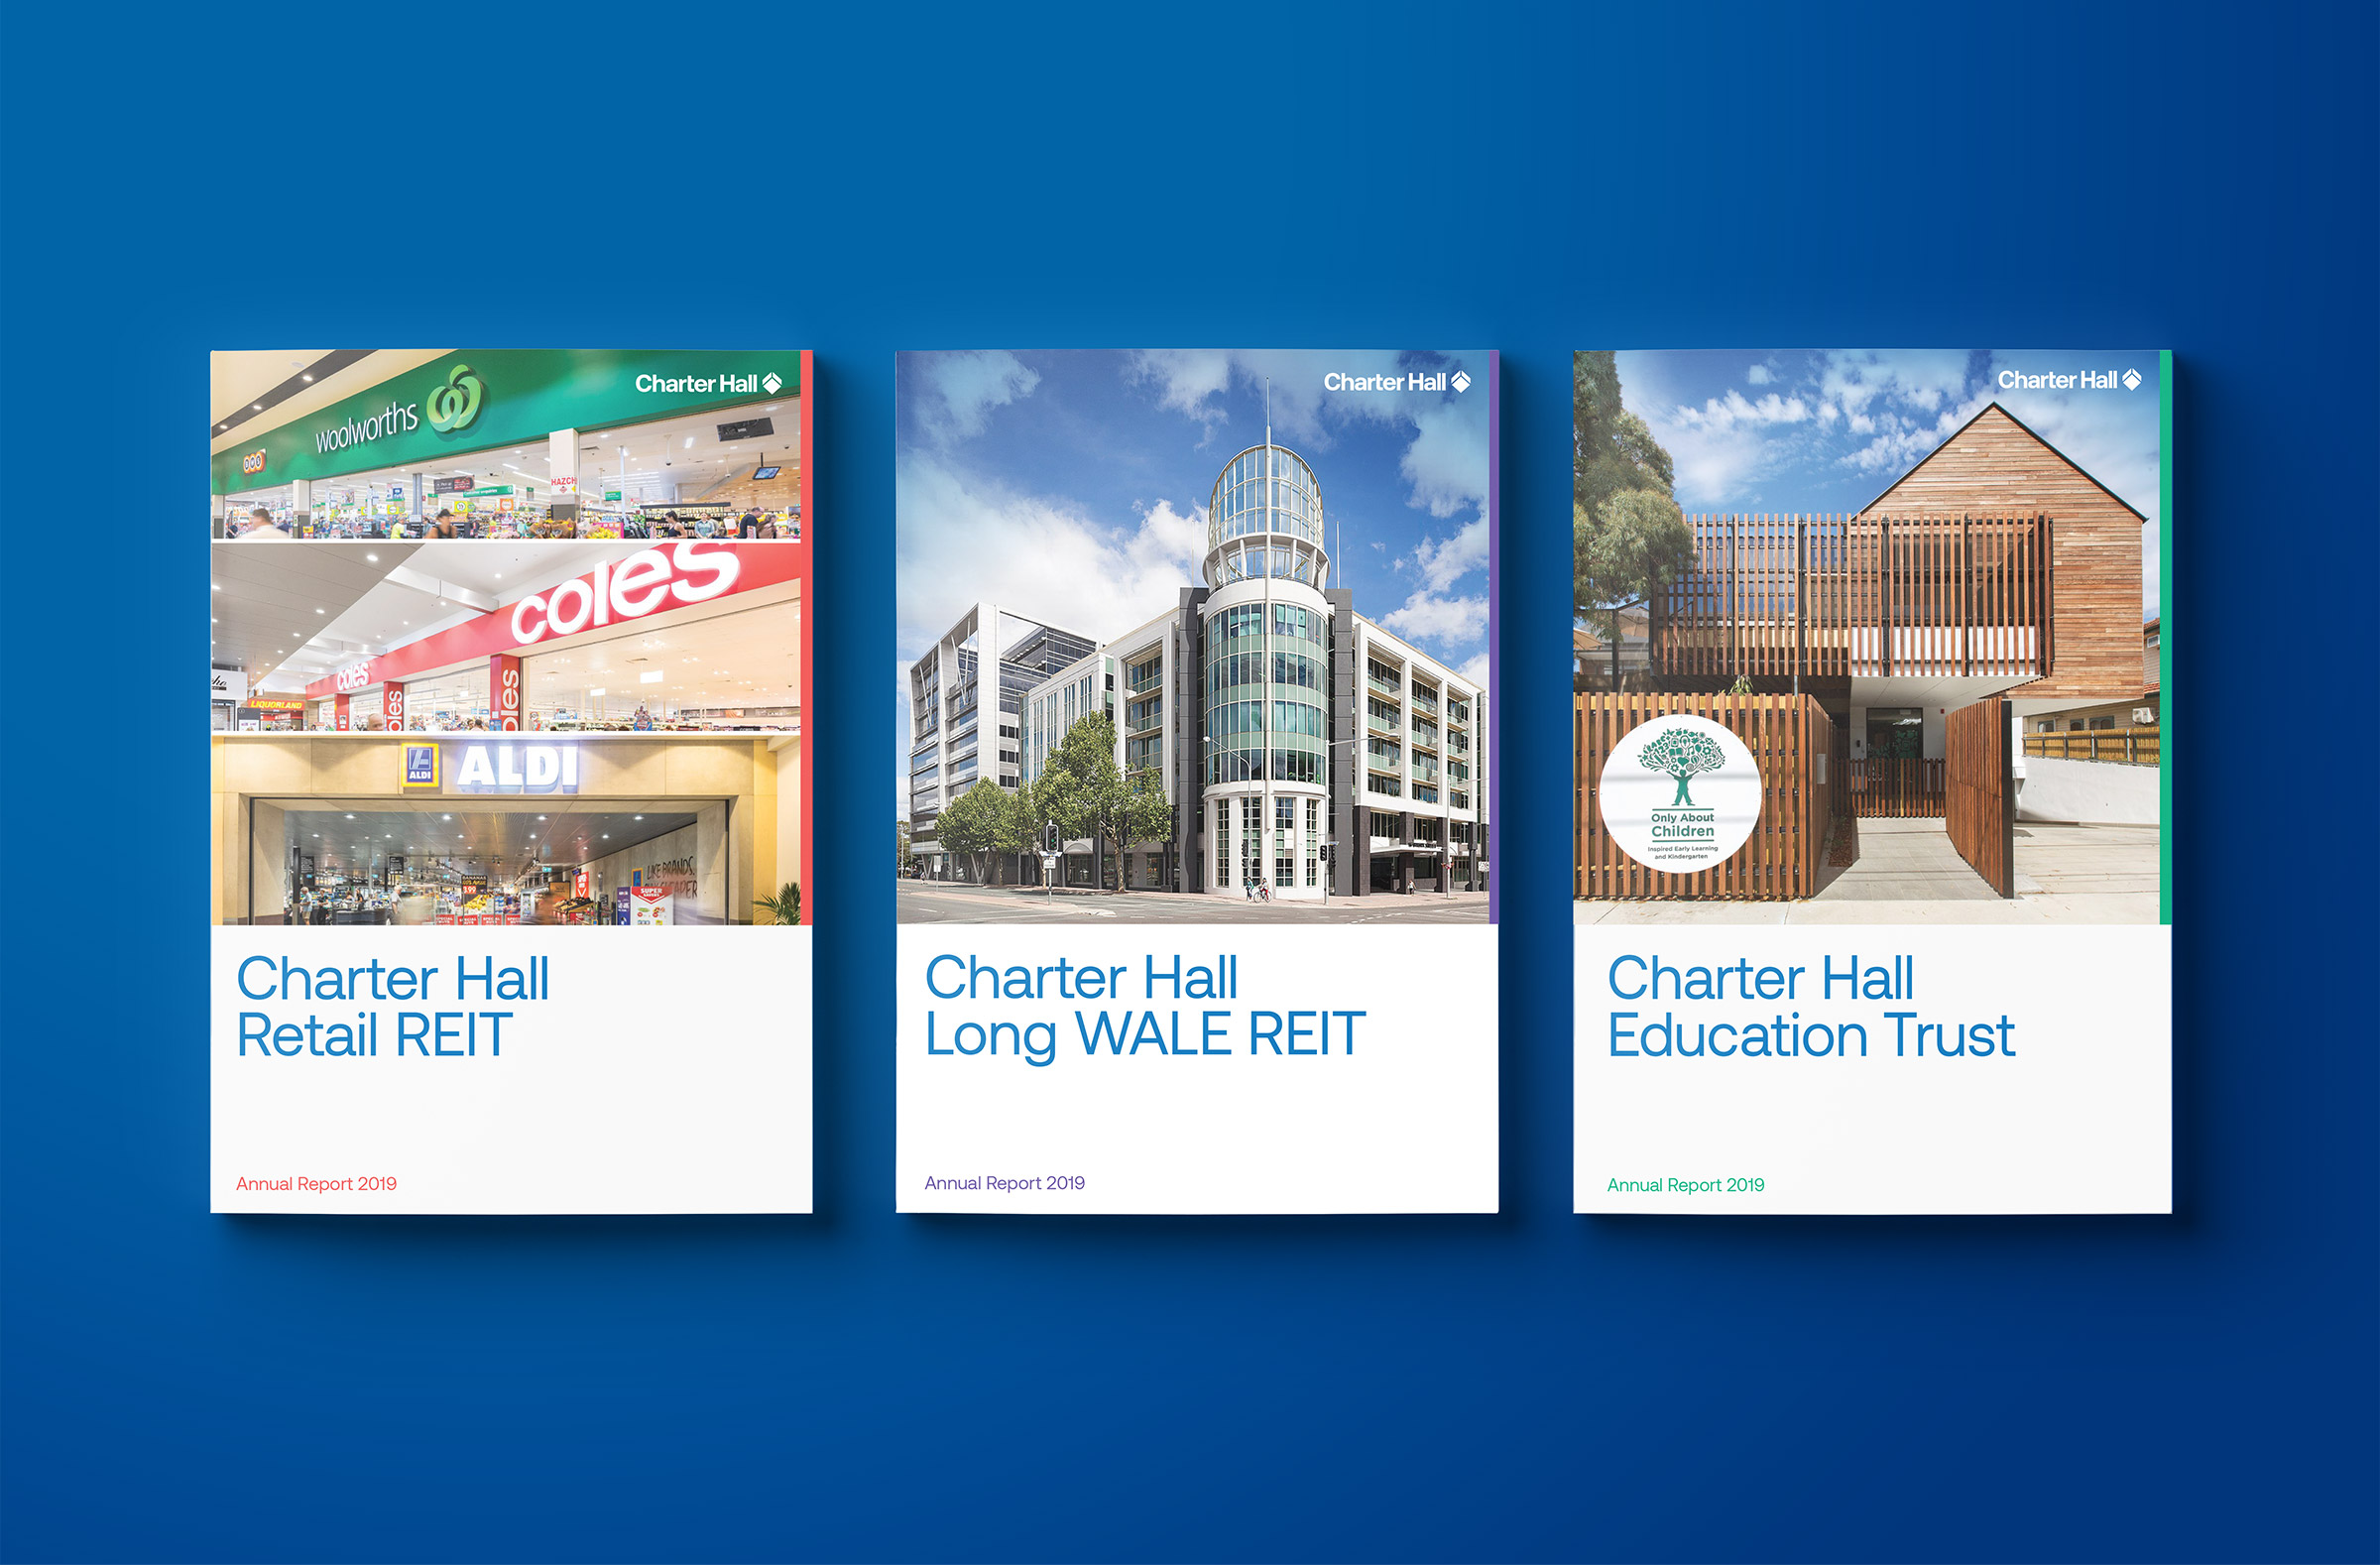 Charter Hall Annual Report. Retail REIT, Long WALE REIT and Education Trust front covers.